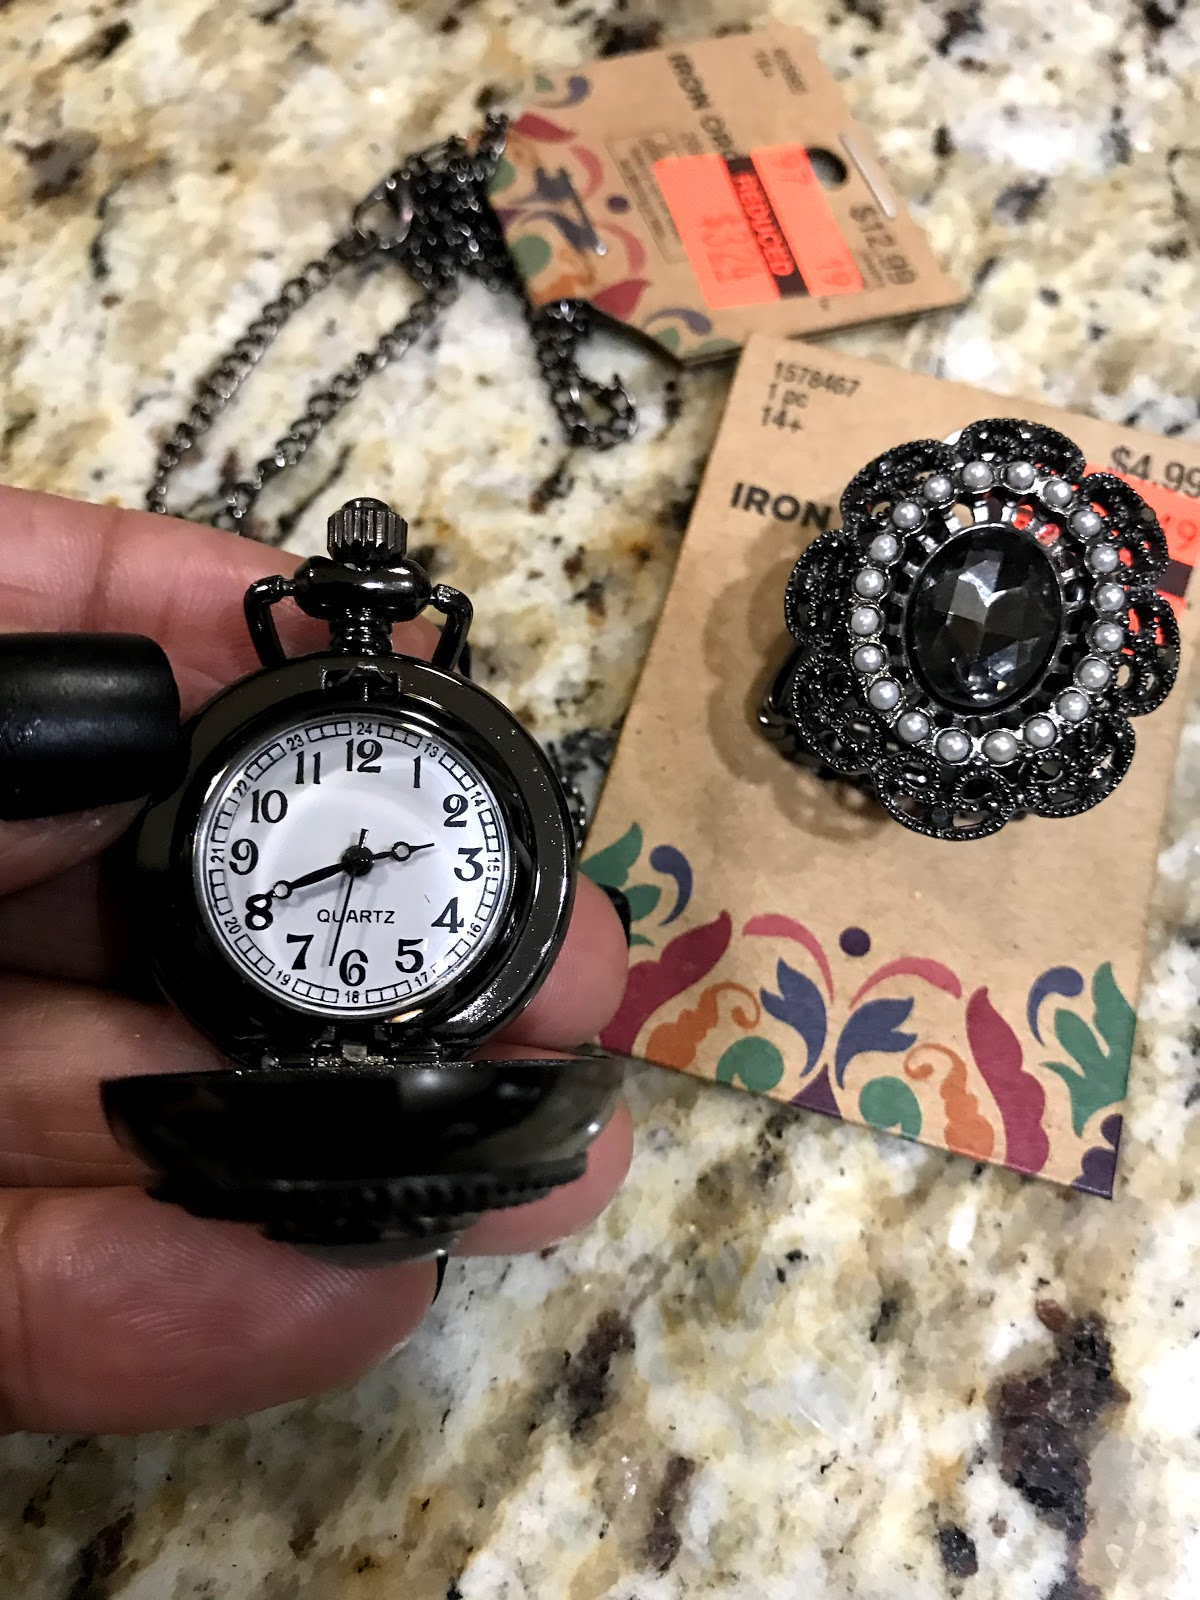 Image: Clock necklace and ring on sale at Hobby Lobby Craft Store